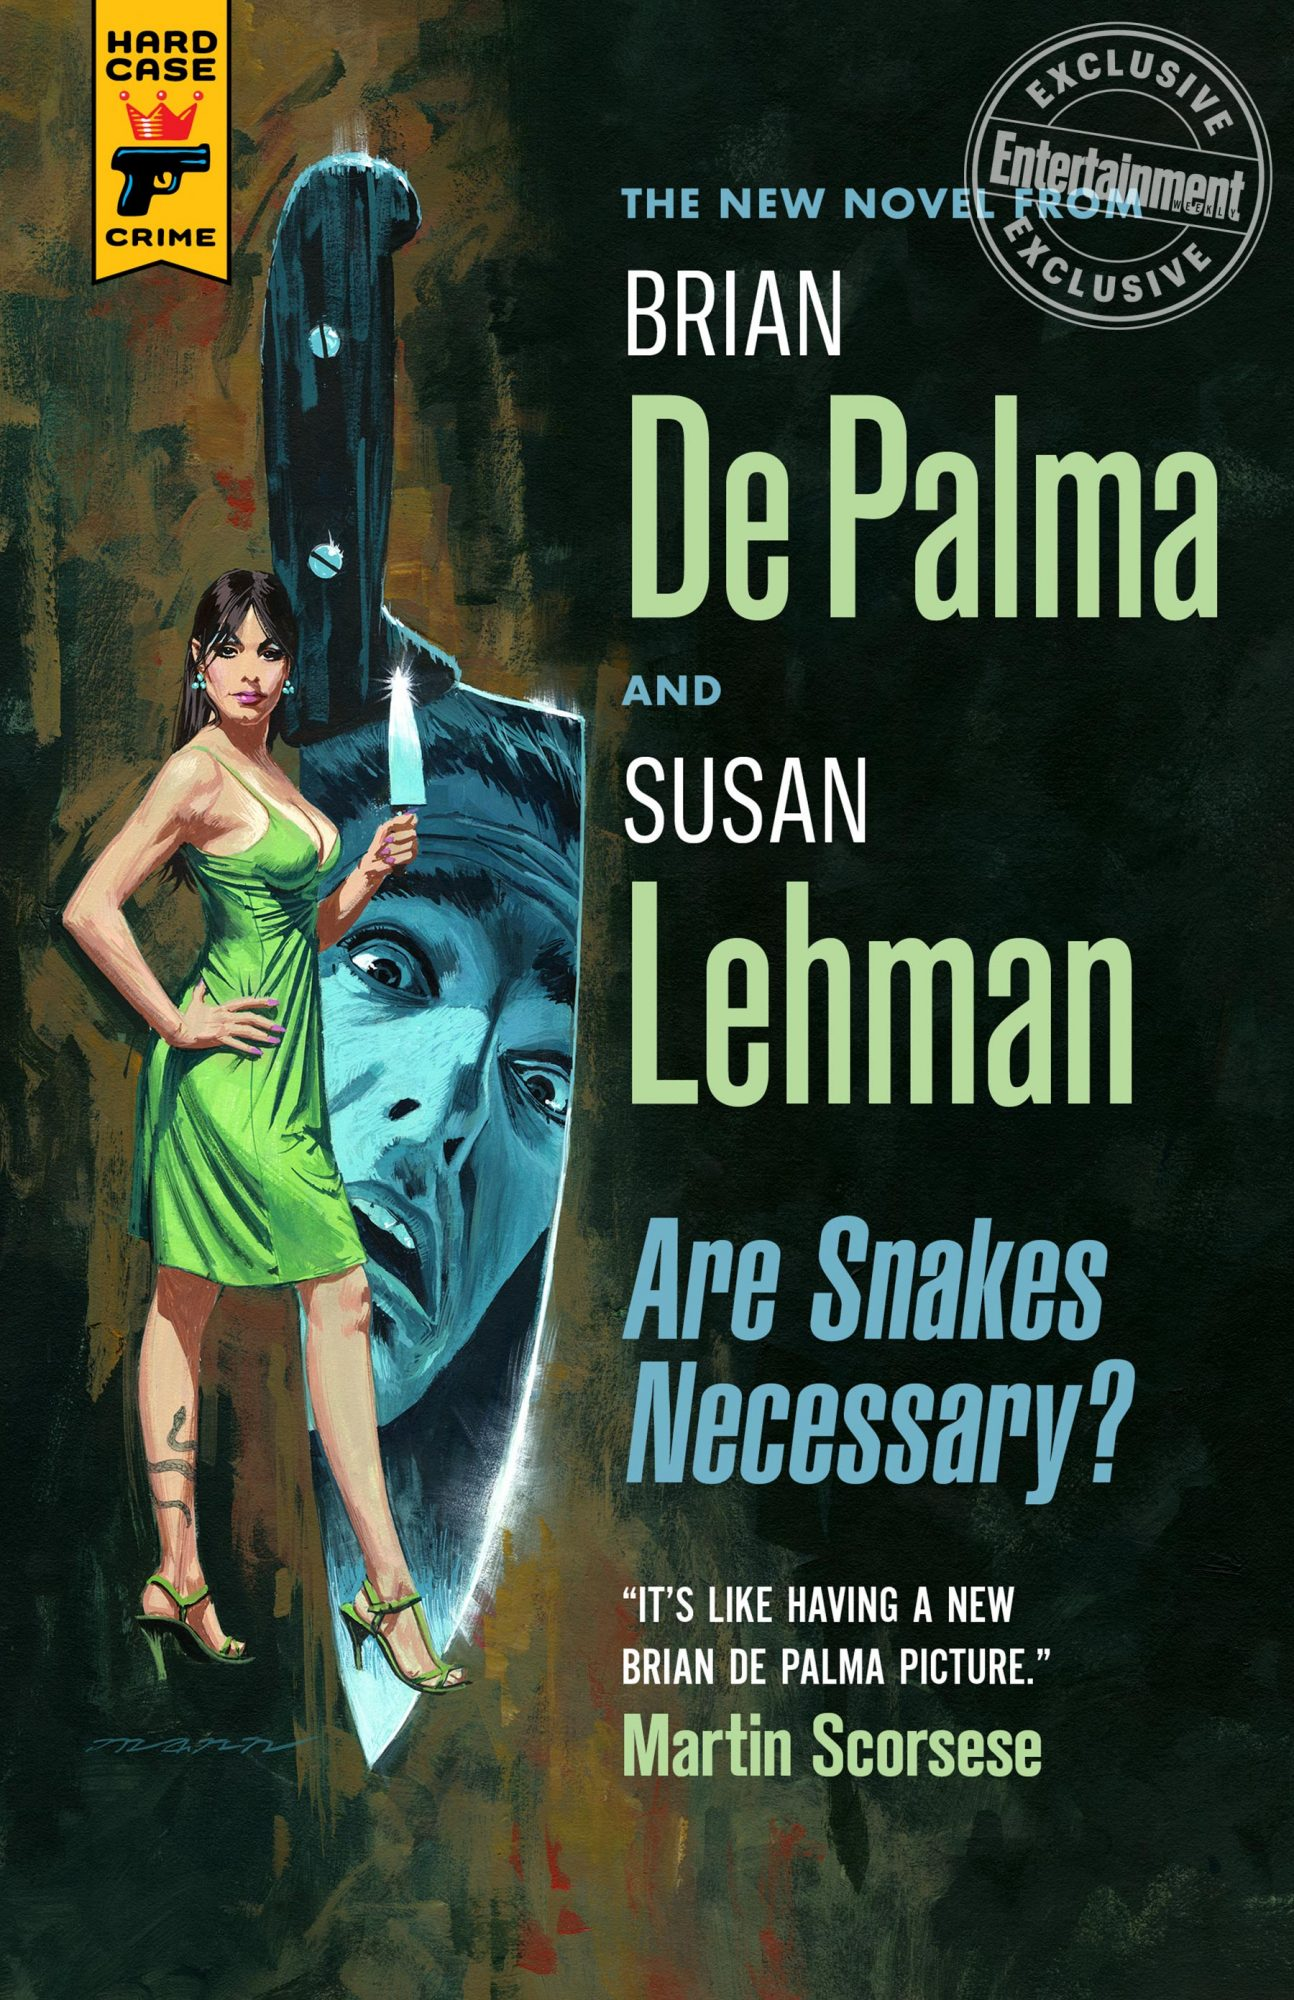 Are Snakes Necessary by Brian De Palma and Susan Lehman CR: Hard Case Crime